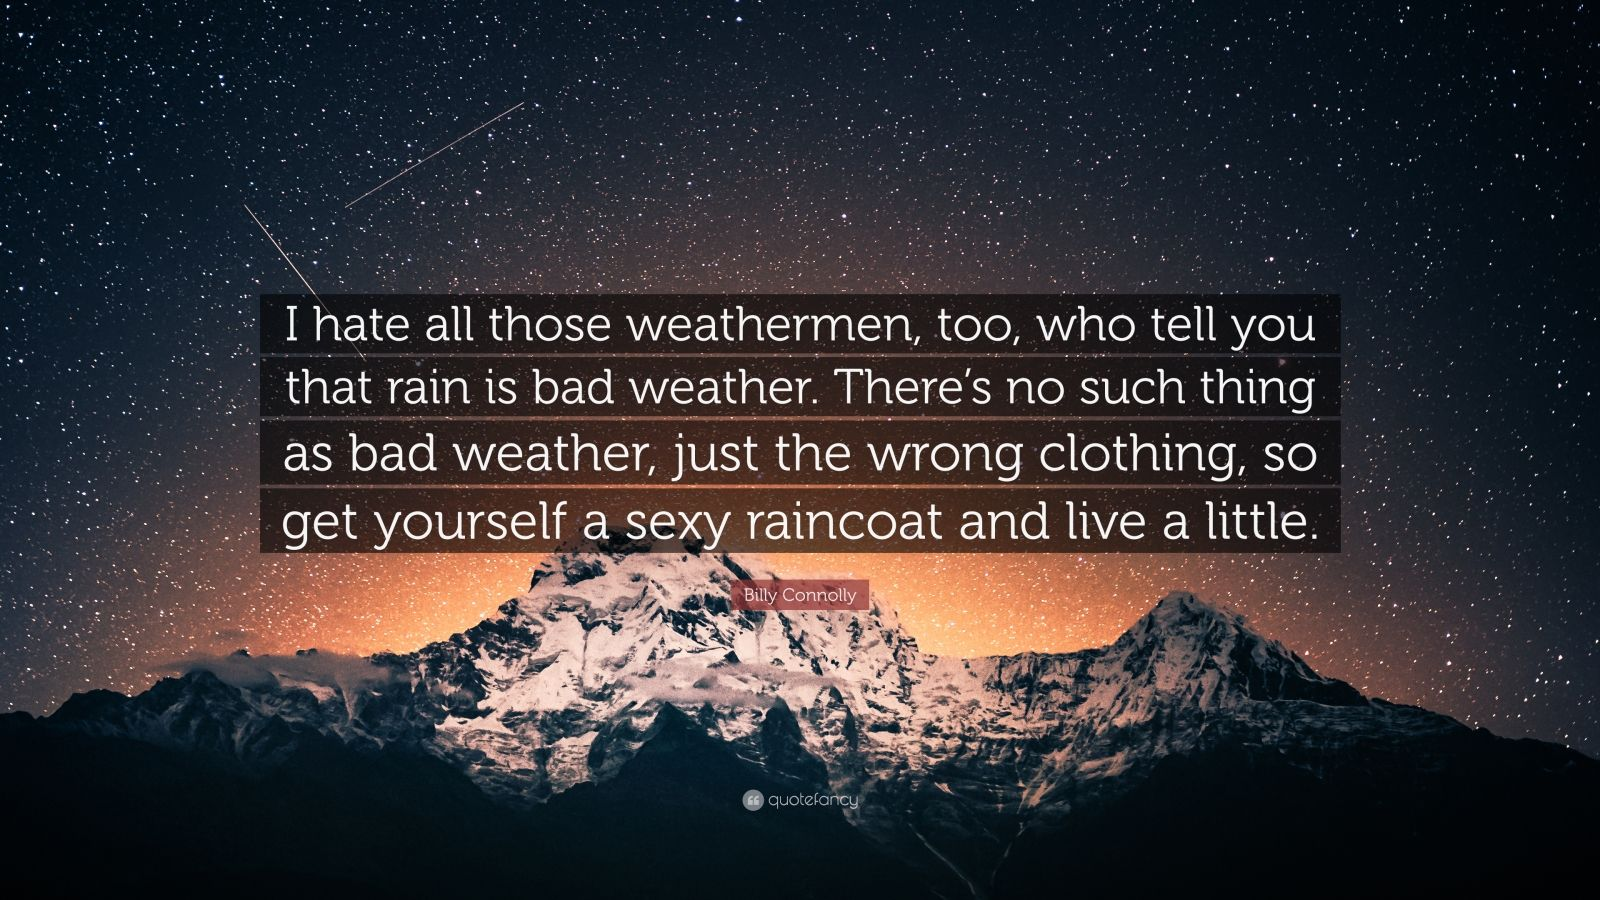 Mother Daughter Quotes Wallpapers Billy Connolly Quote I Hate All Those Weathermen Too